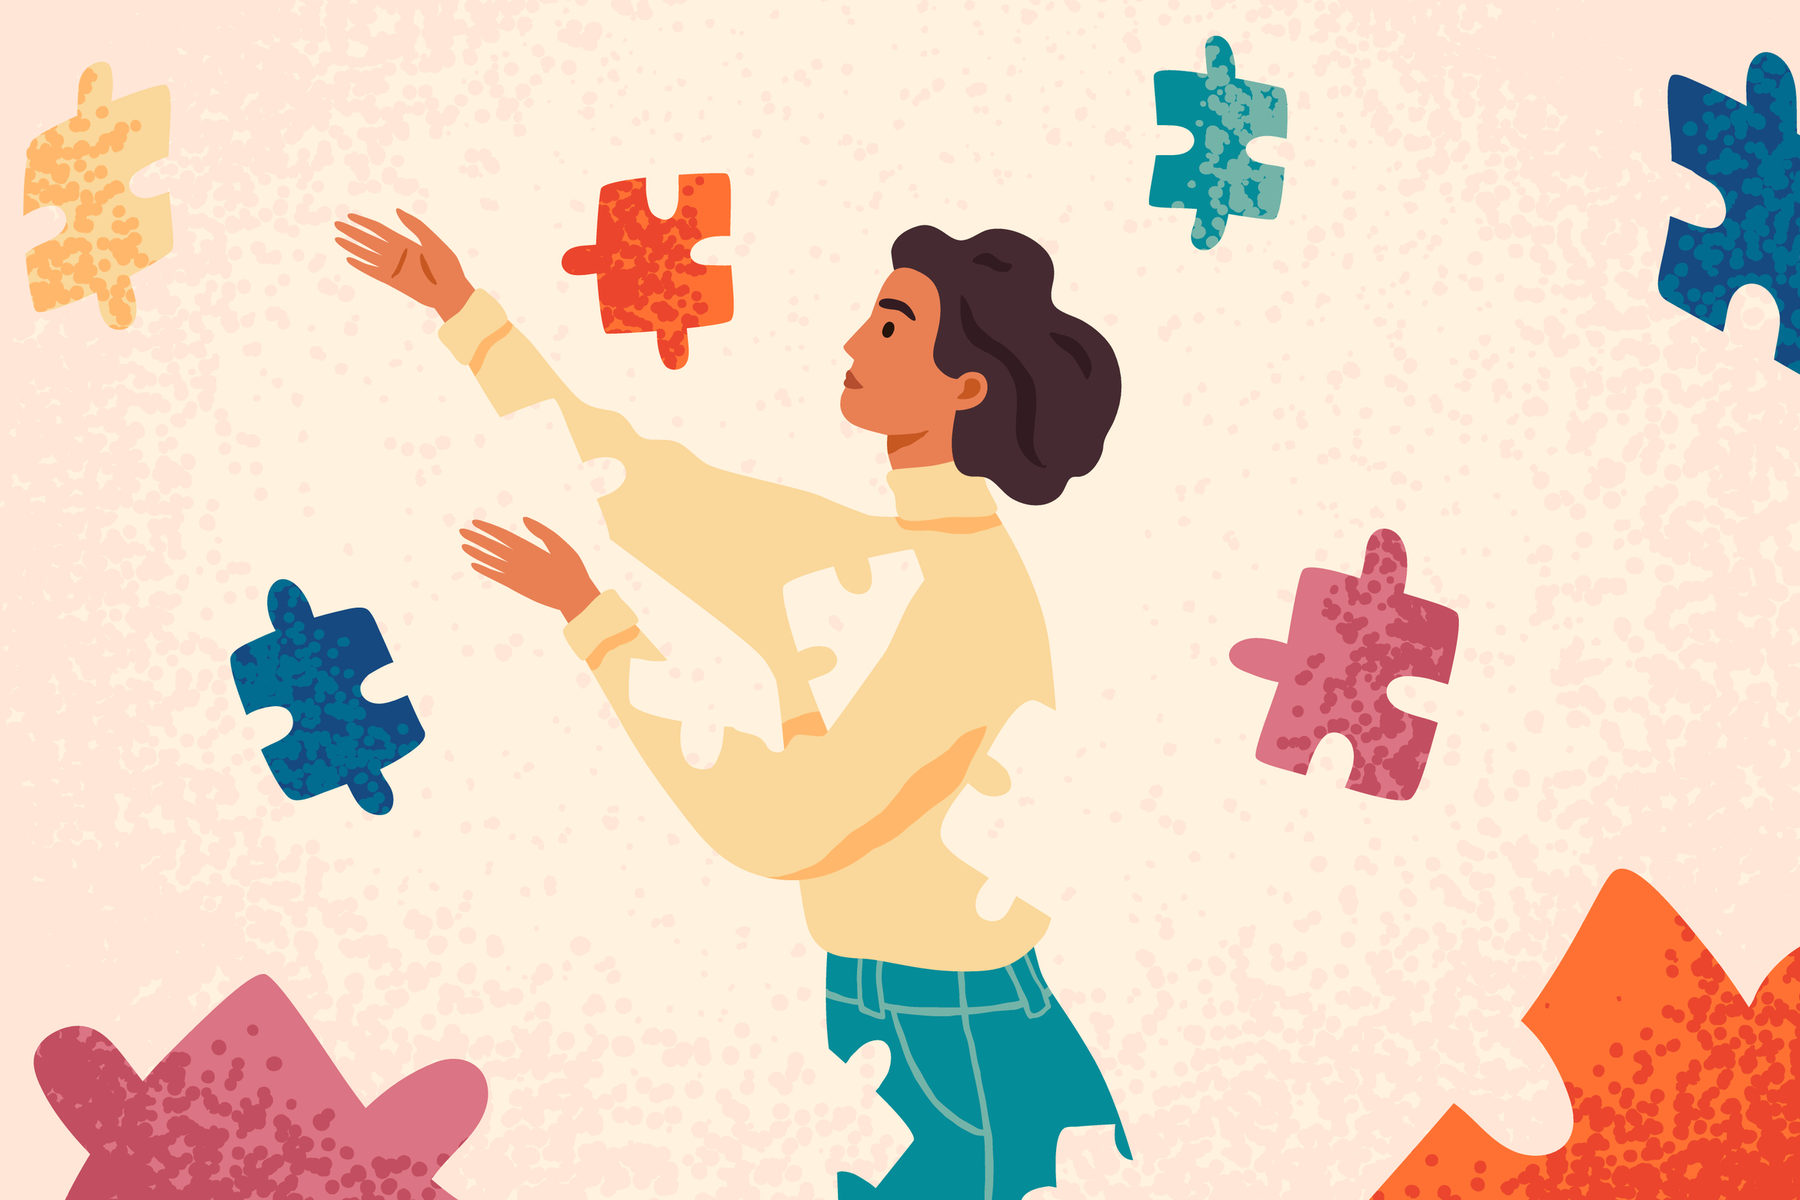 woman of color reaching into space surrounded by puzzle pieces